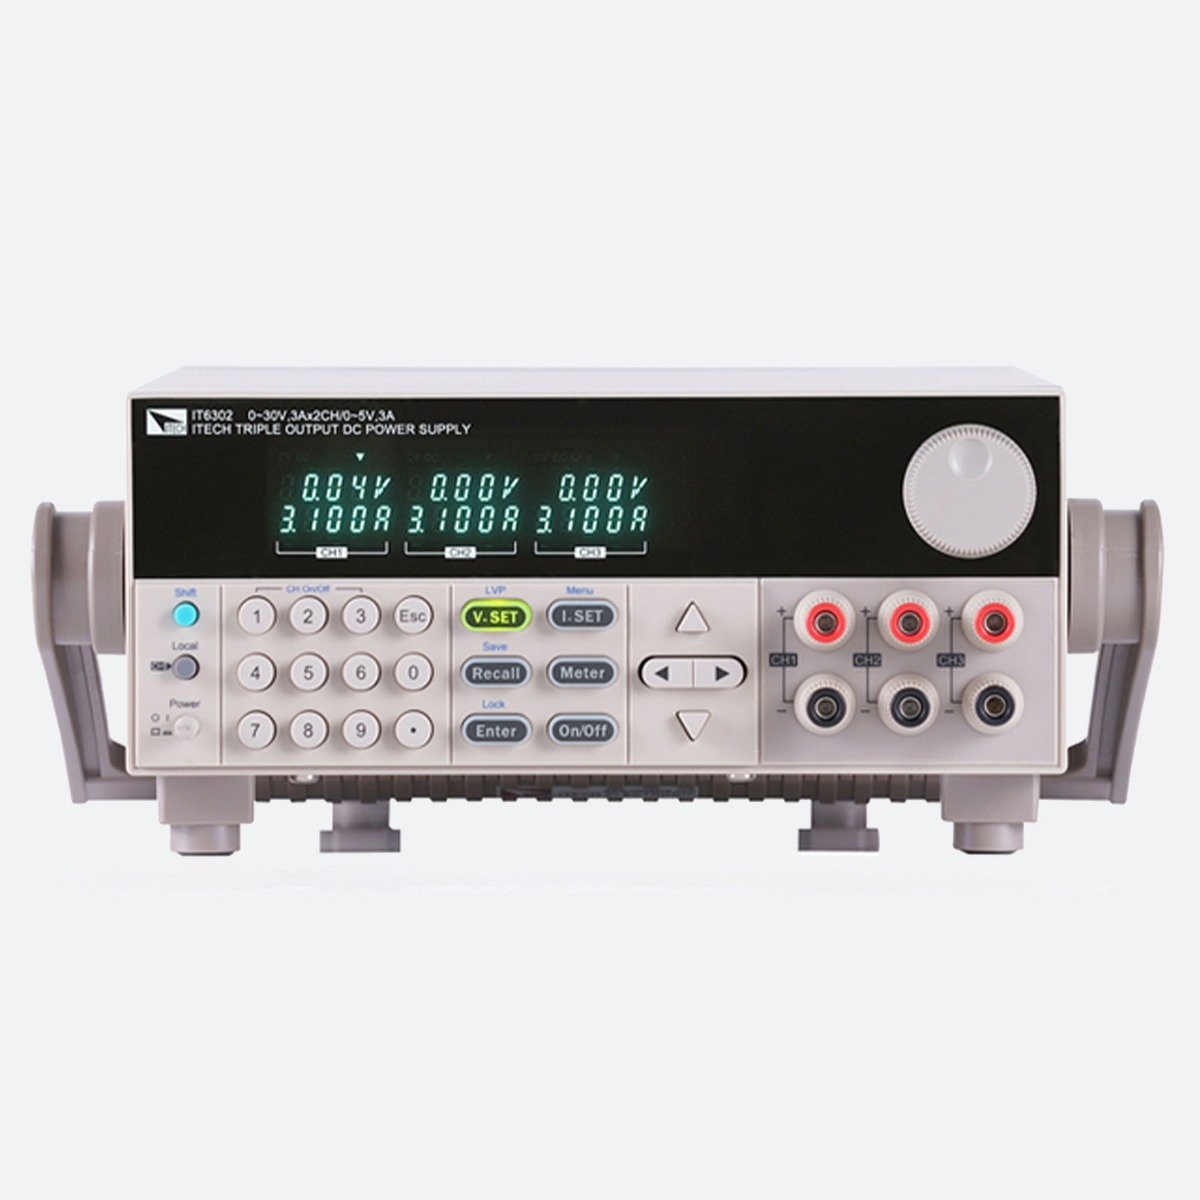 ITECH IT6300 series Power Supply CControls